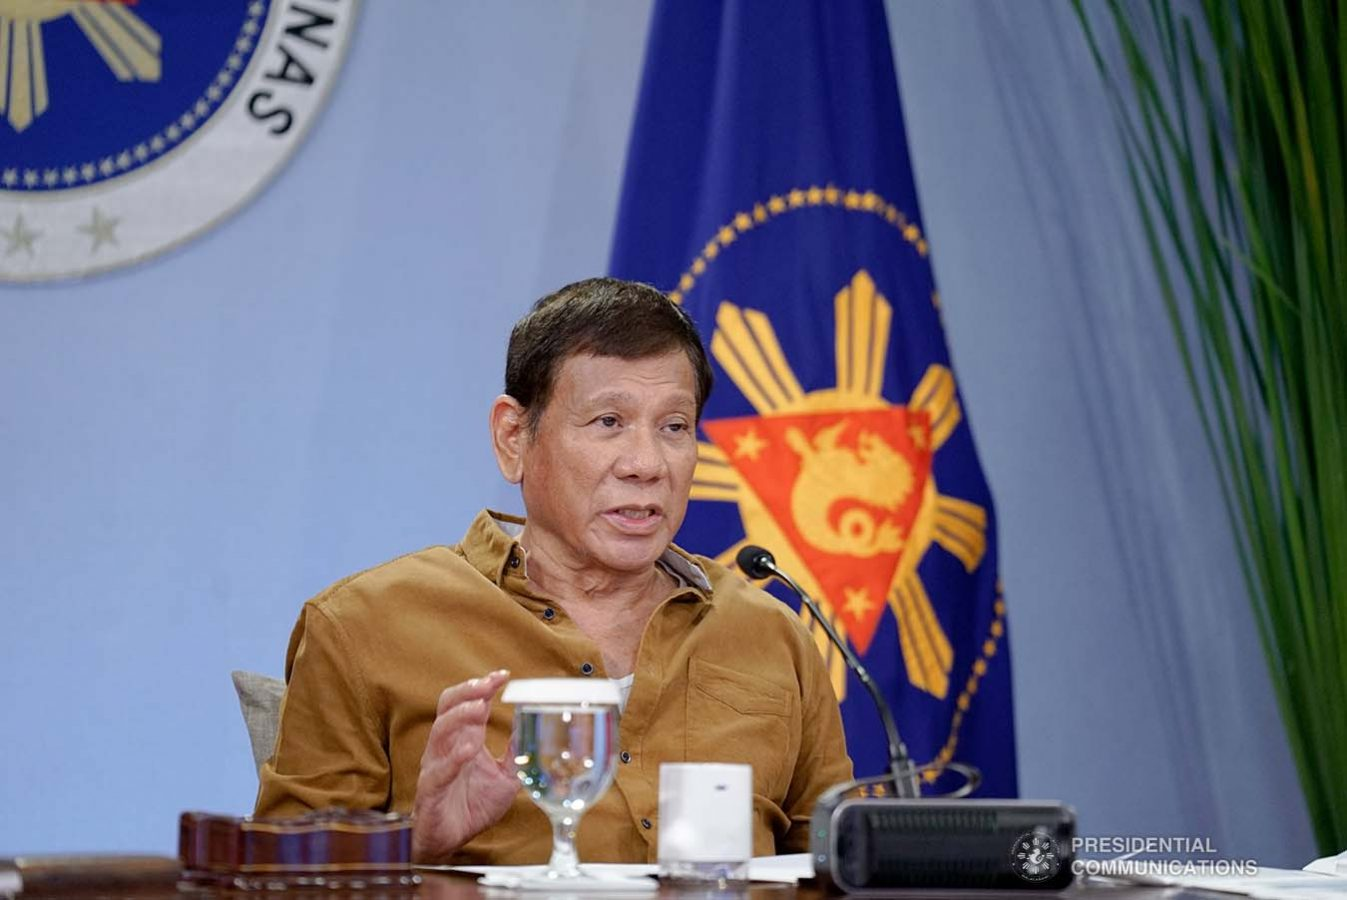 President Rodrigo Roa Duterte talks to the people after holding a meeting with the Inter-Agency Task Force on the Emerging Infectious Diseases (IATF-EID) core members at the Malacañang Golf (Malago) Clubhouse in Malacañang Park, Manila on April 15, 2021. KING RODRIGUEZ/ PRESIDENTIAL PHOTO